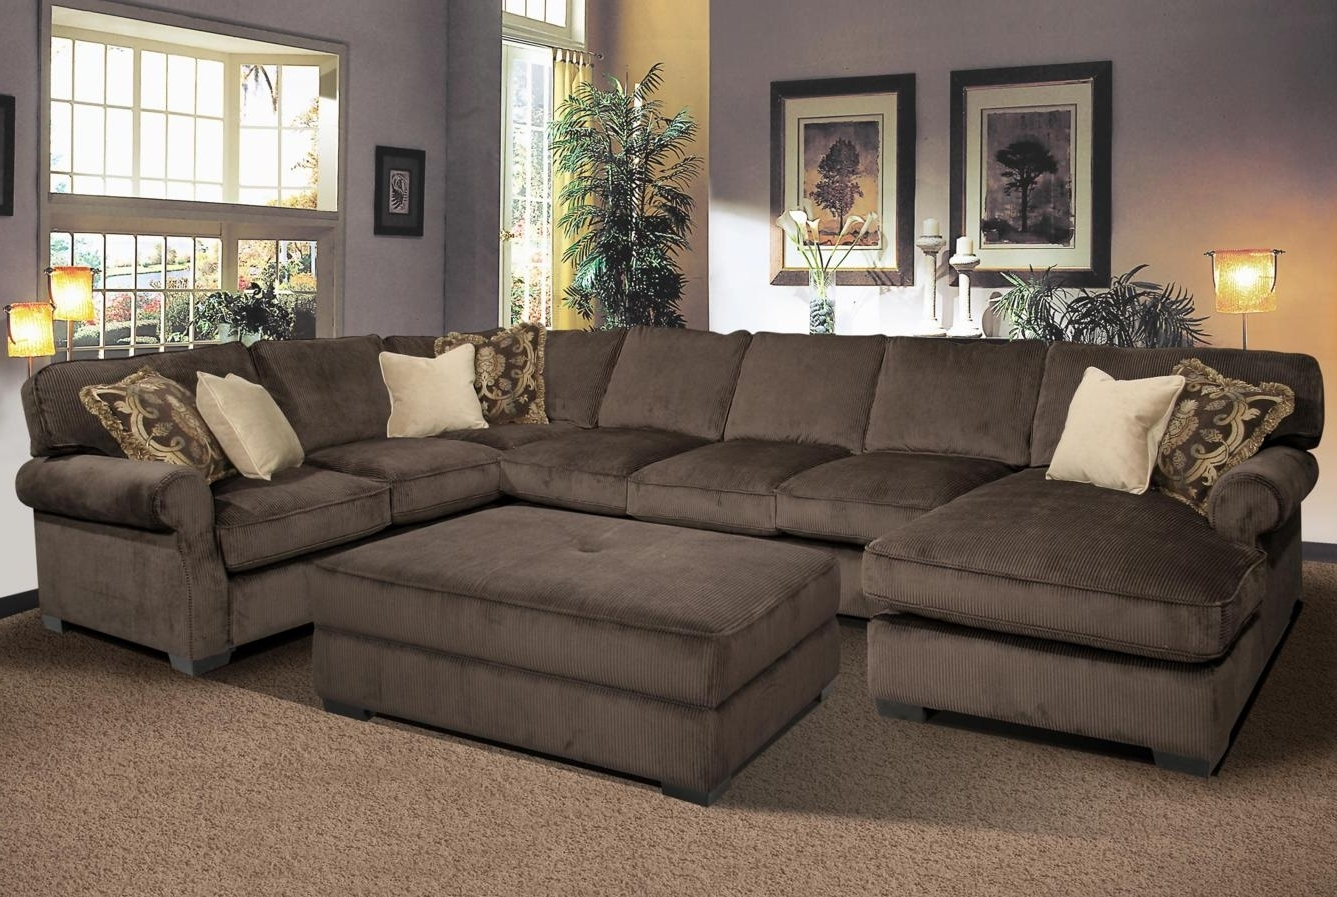 Most Current Inexpensive Sectional Sofas For Small Spaces Pertaining To Stylish Inexpensive Sectional Sofas For Small Spaces (View 11 of 15)